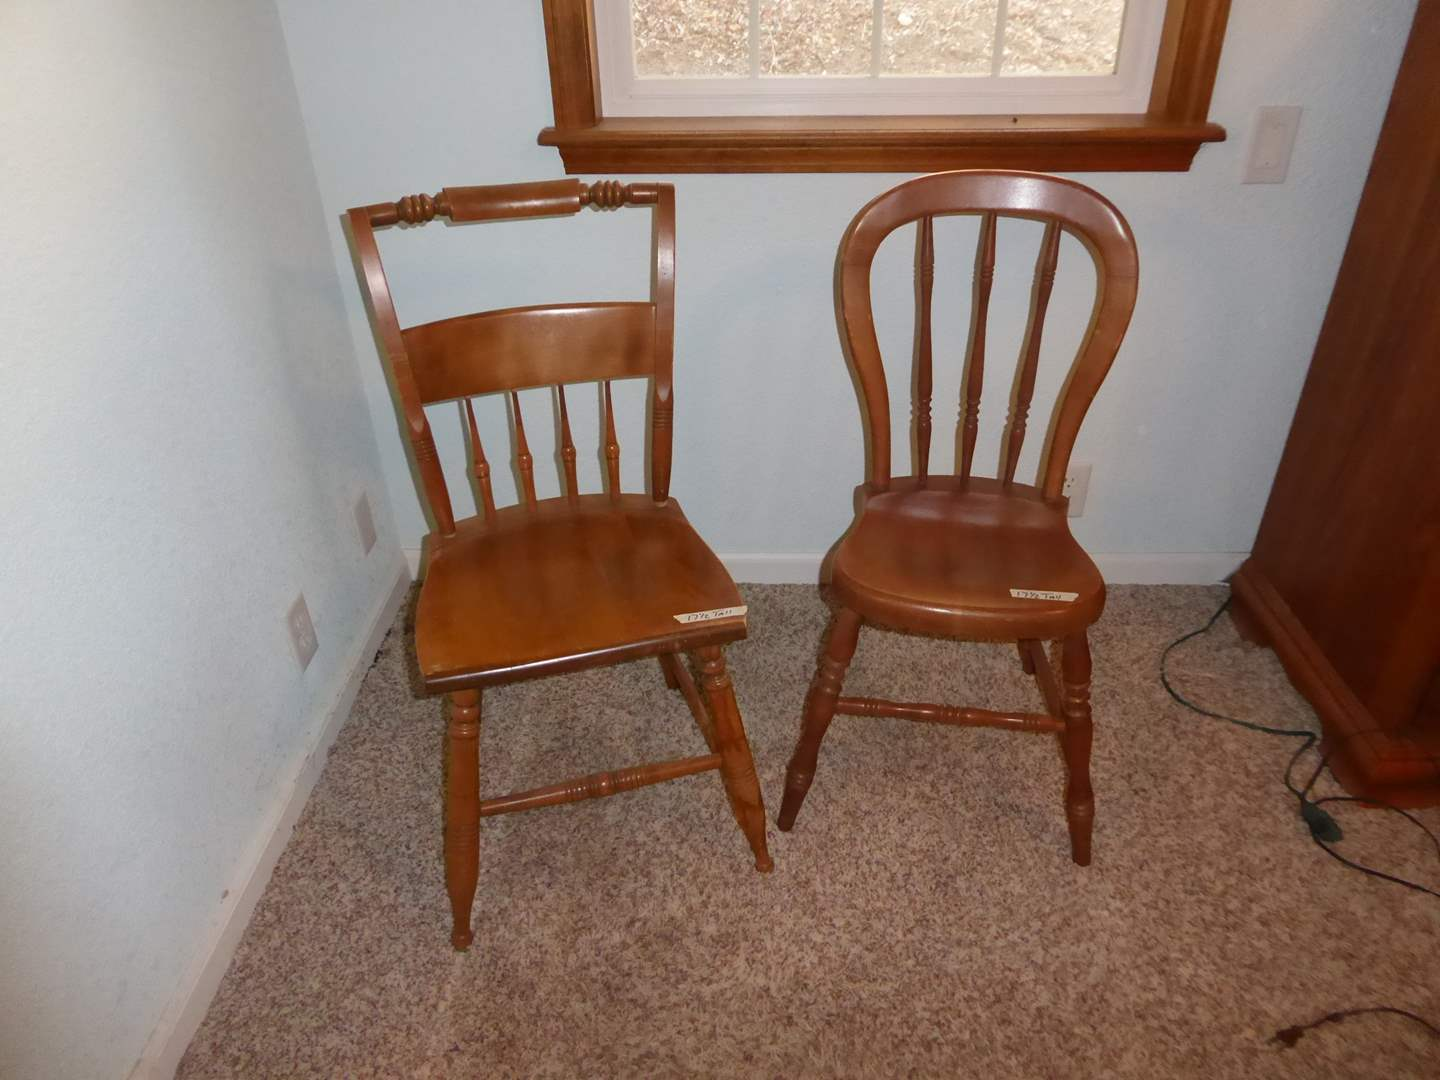 Lot # 217 - Two Cute Wooden Chairs (main image)